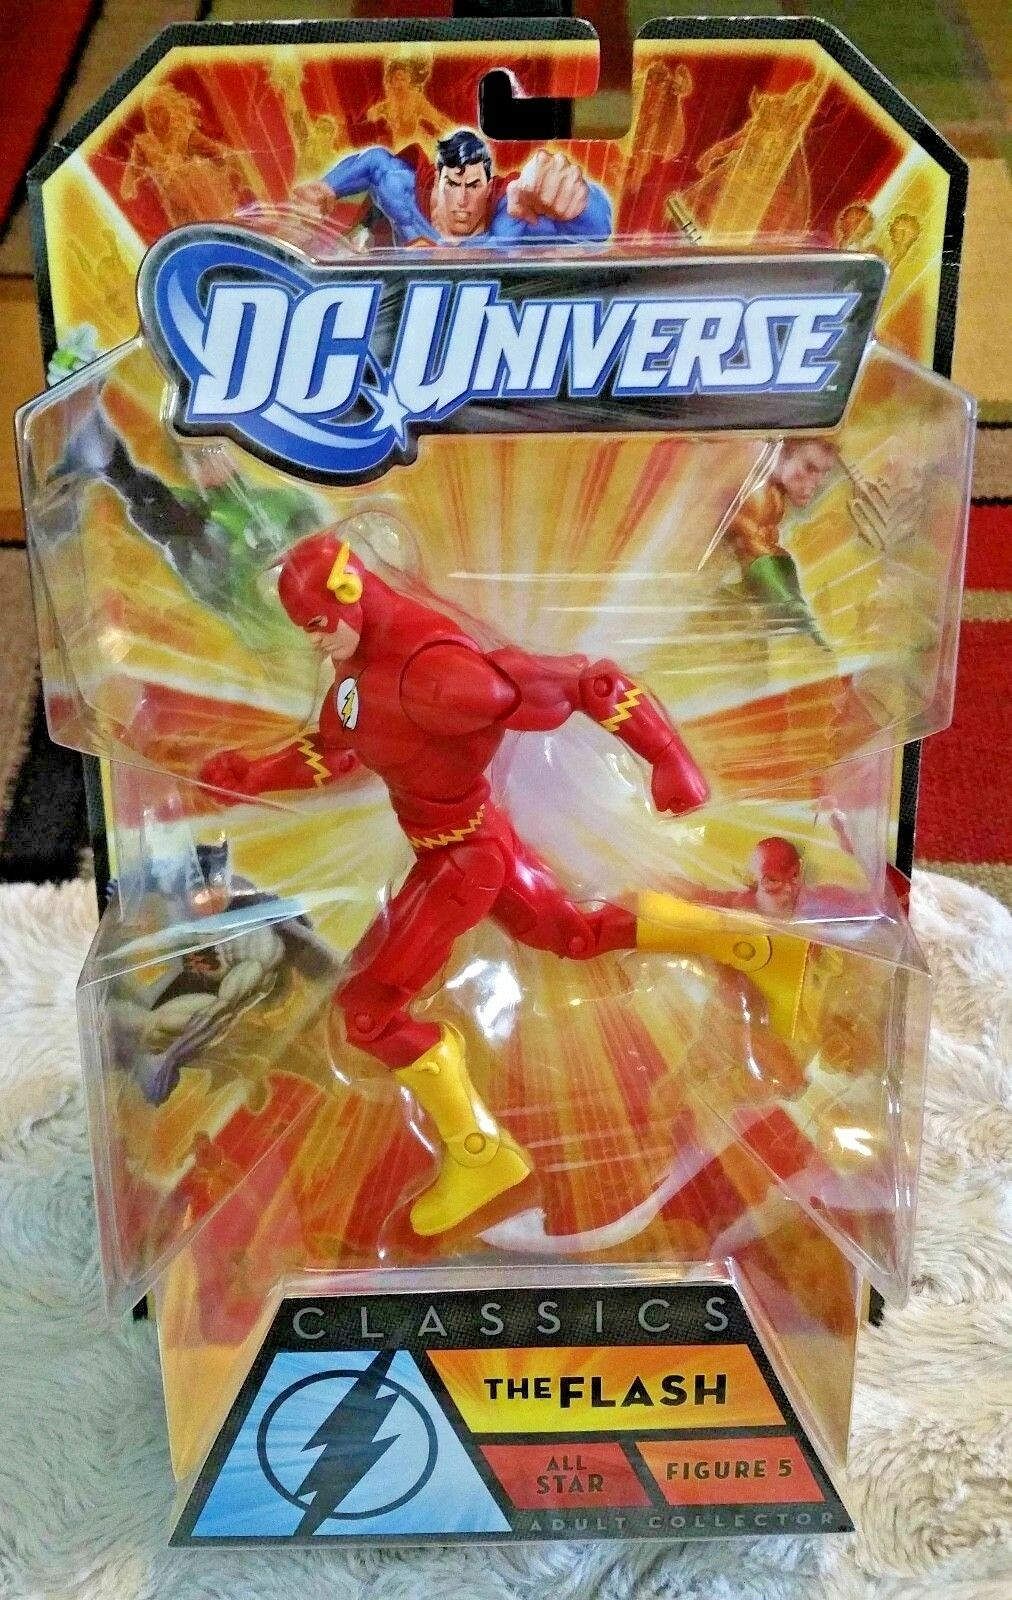 Dc - universum - klassiker der flash - all - star - welle abbildung 5